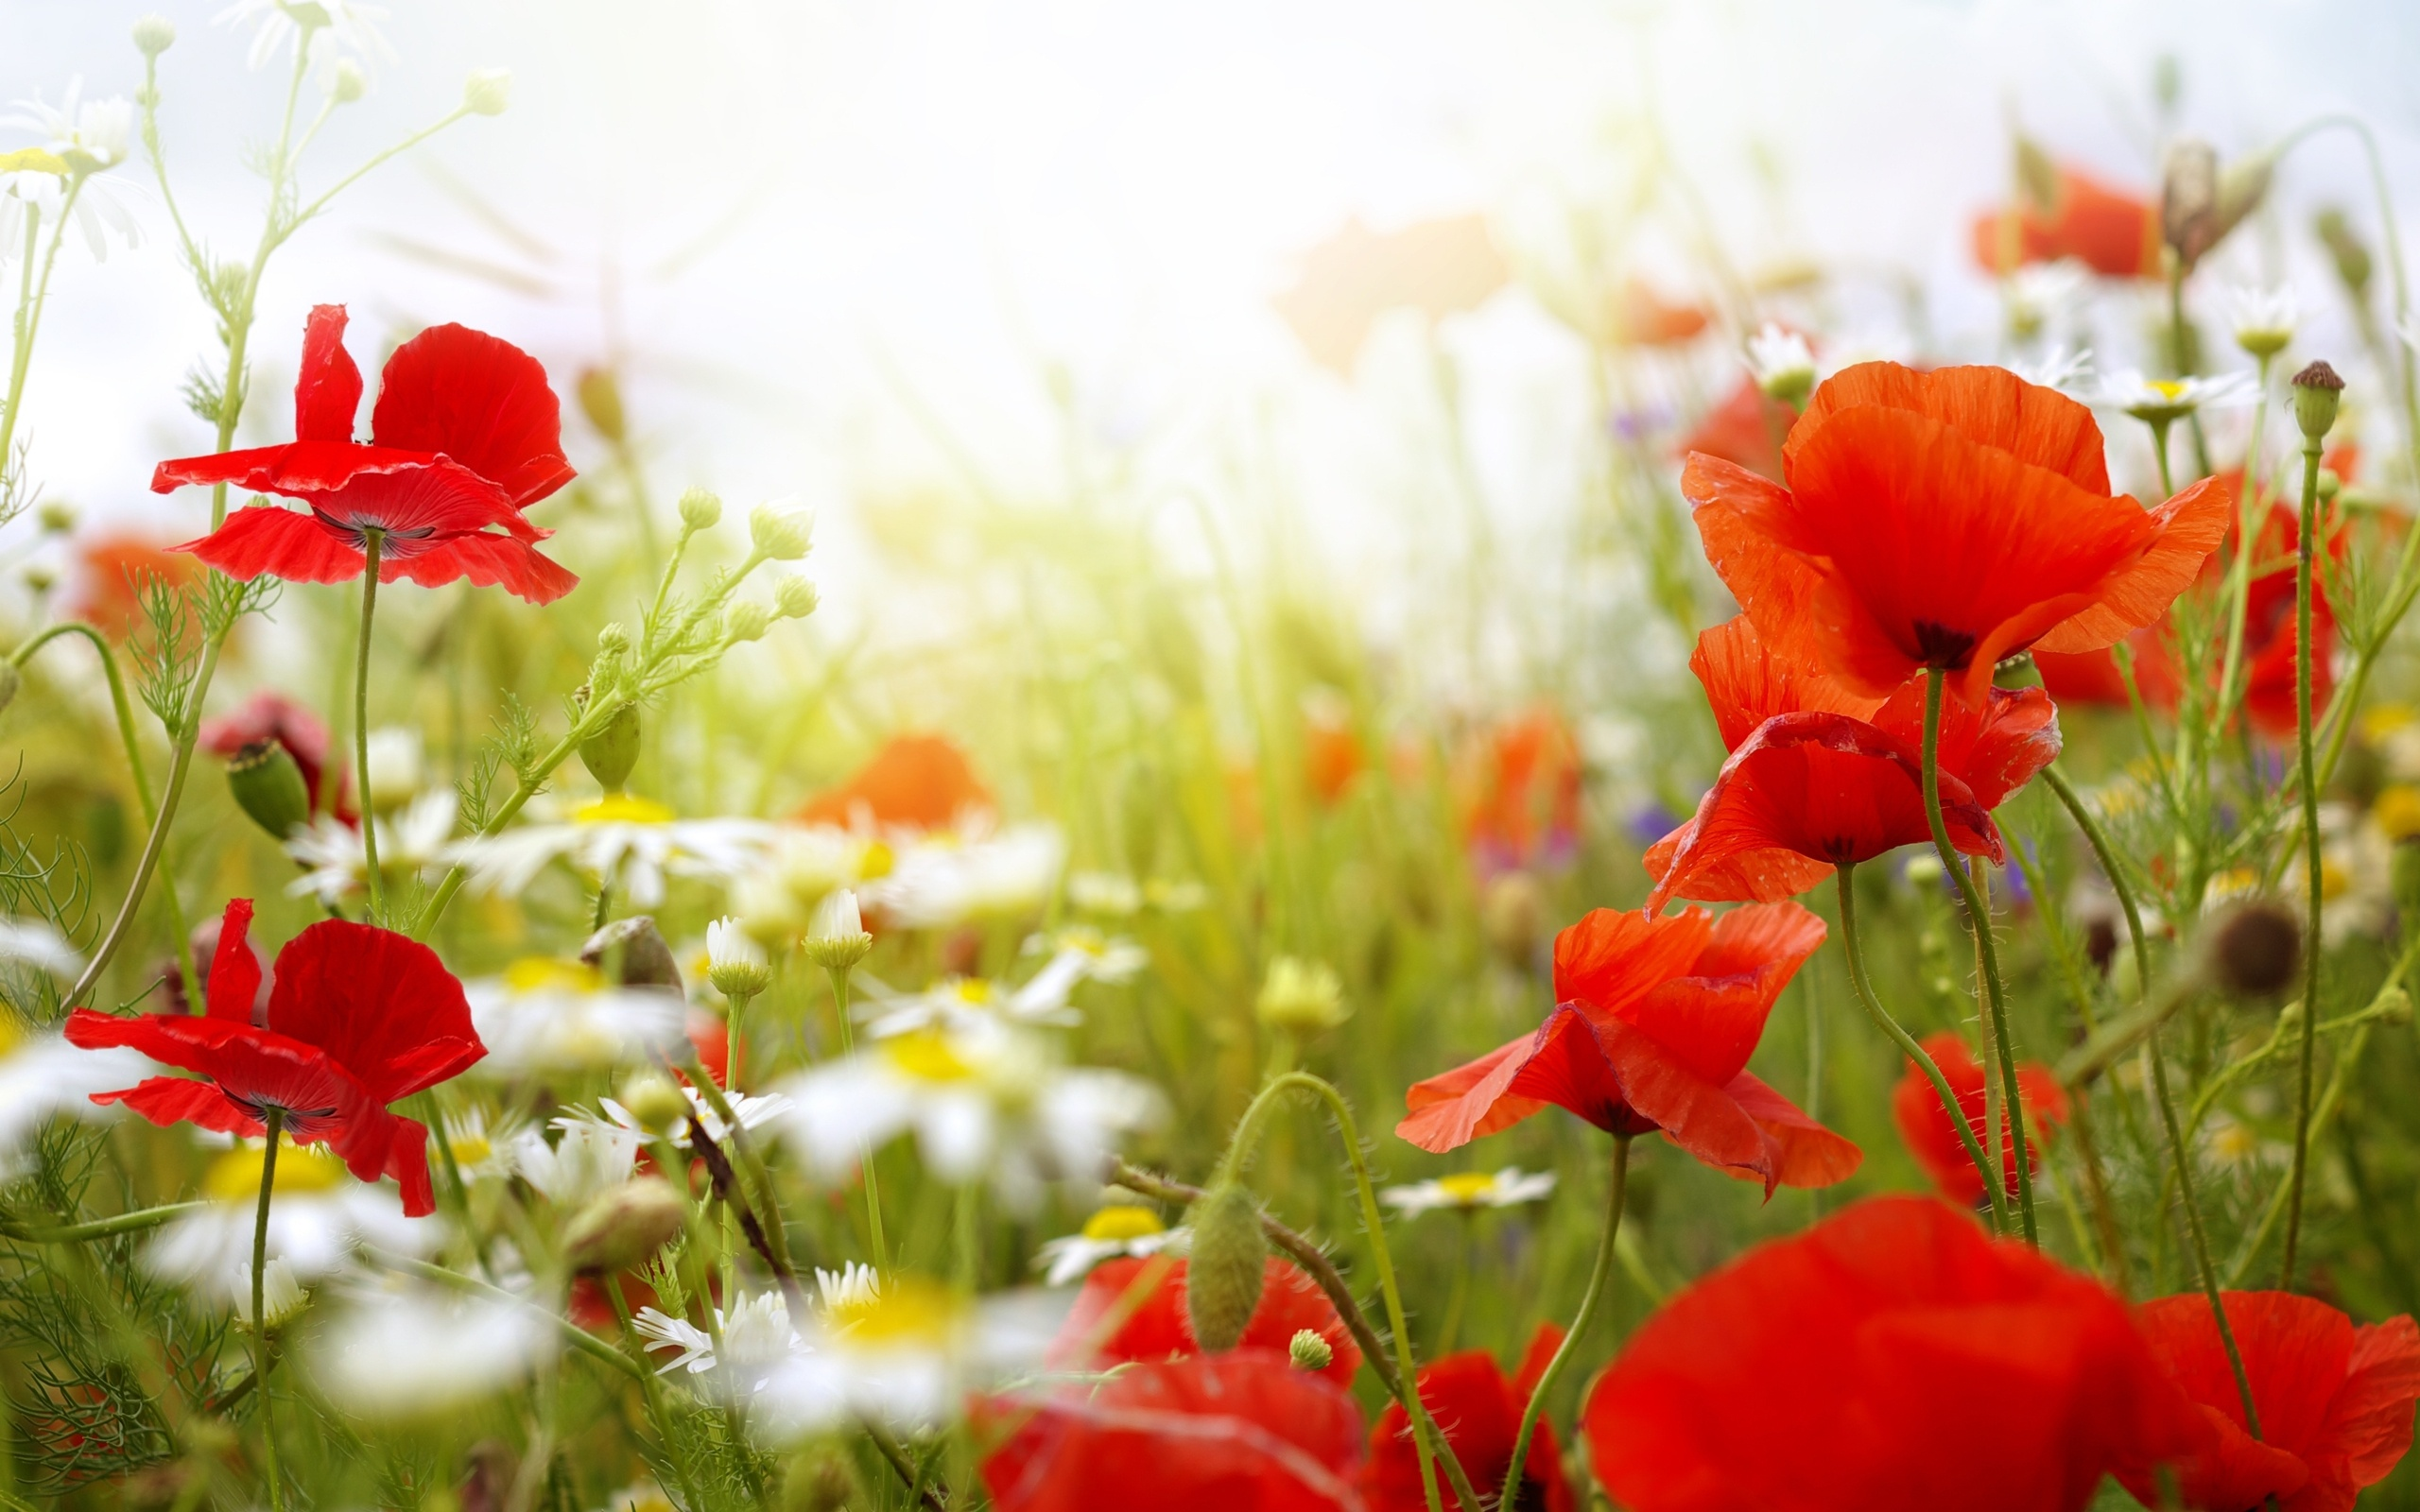 Colorful poppy flowers 2560 x 1600 download close